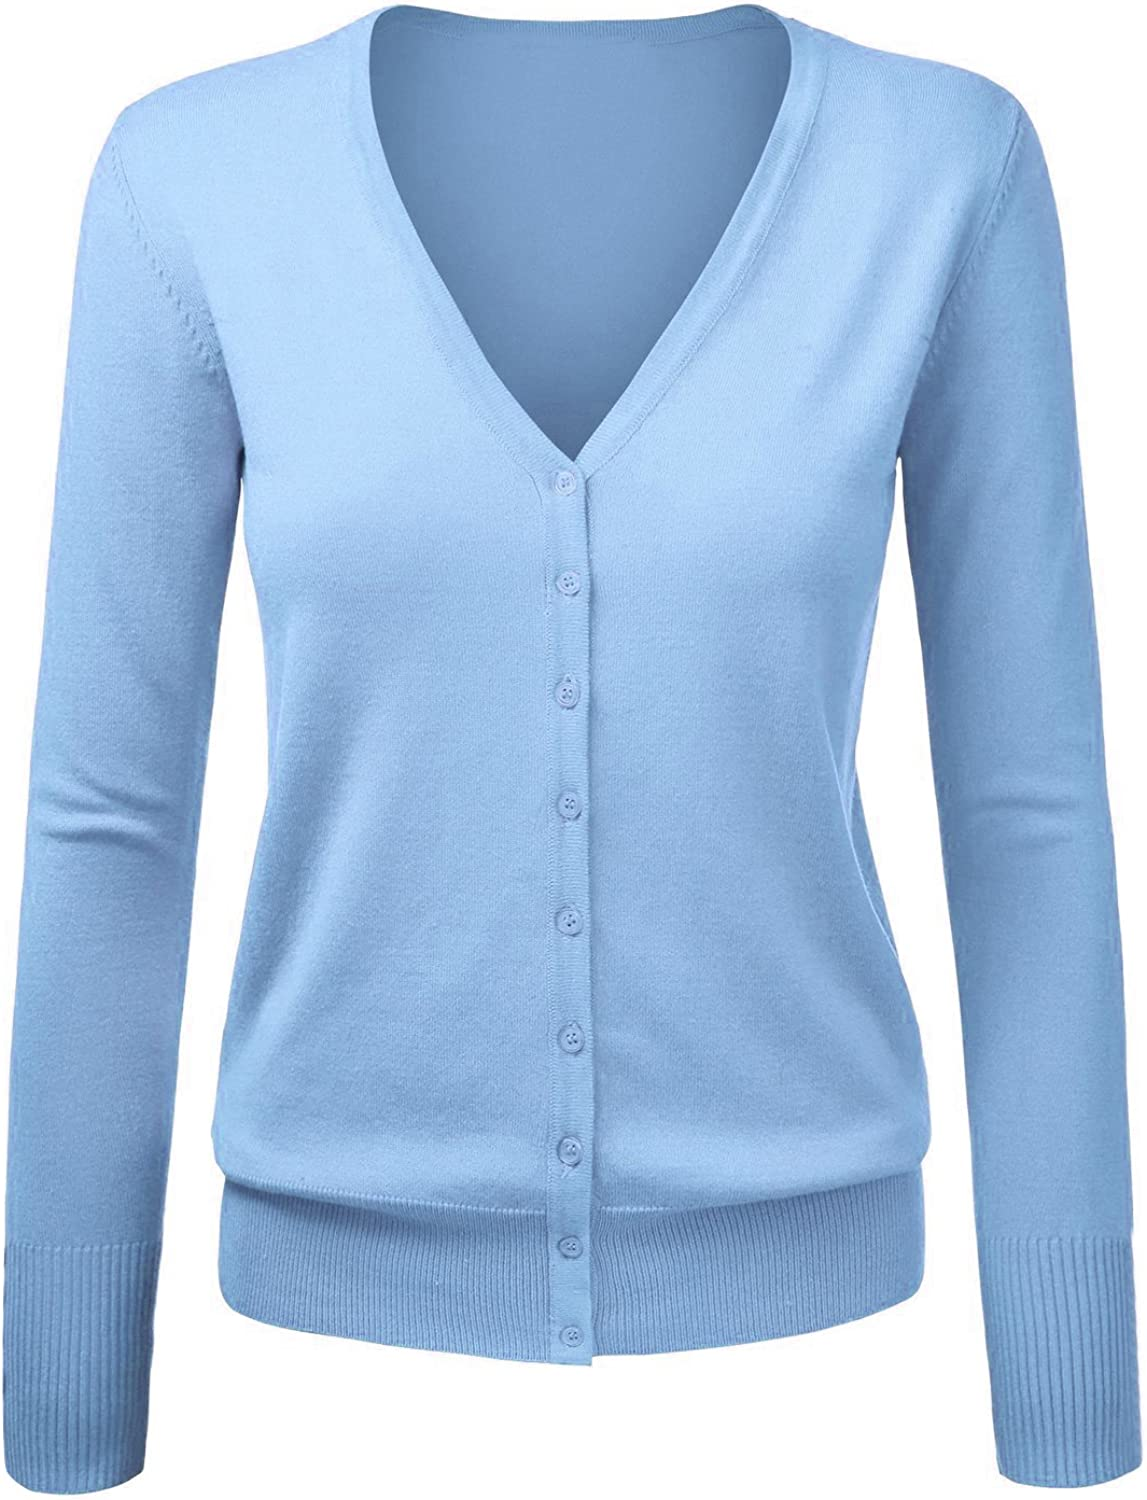 VOBAGA Womens O-Neck Button Down Long Sleeve Cardigan Sweater